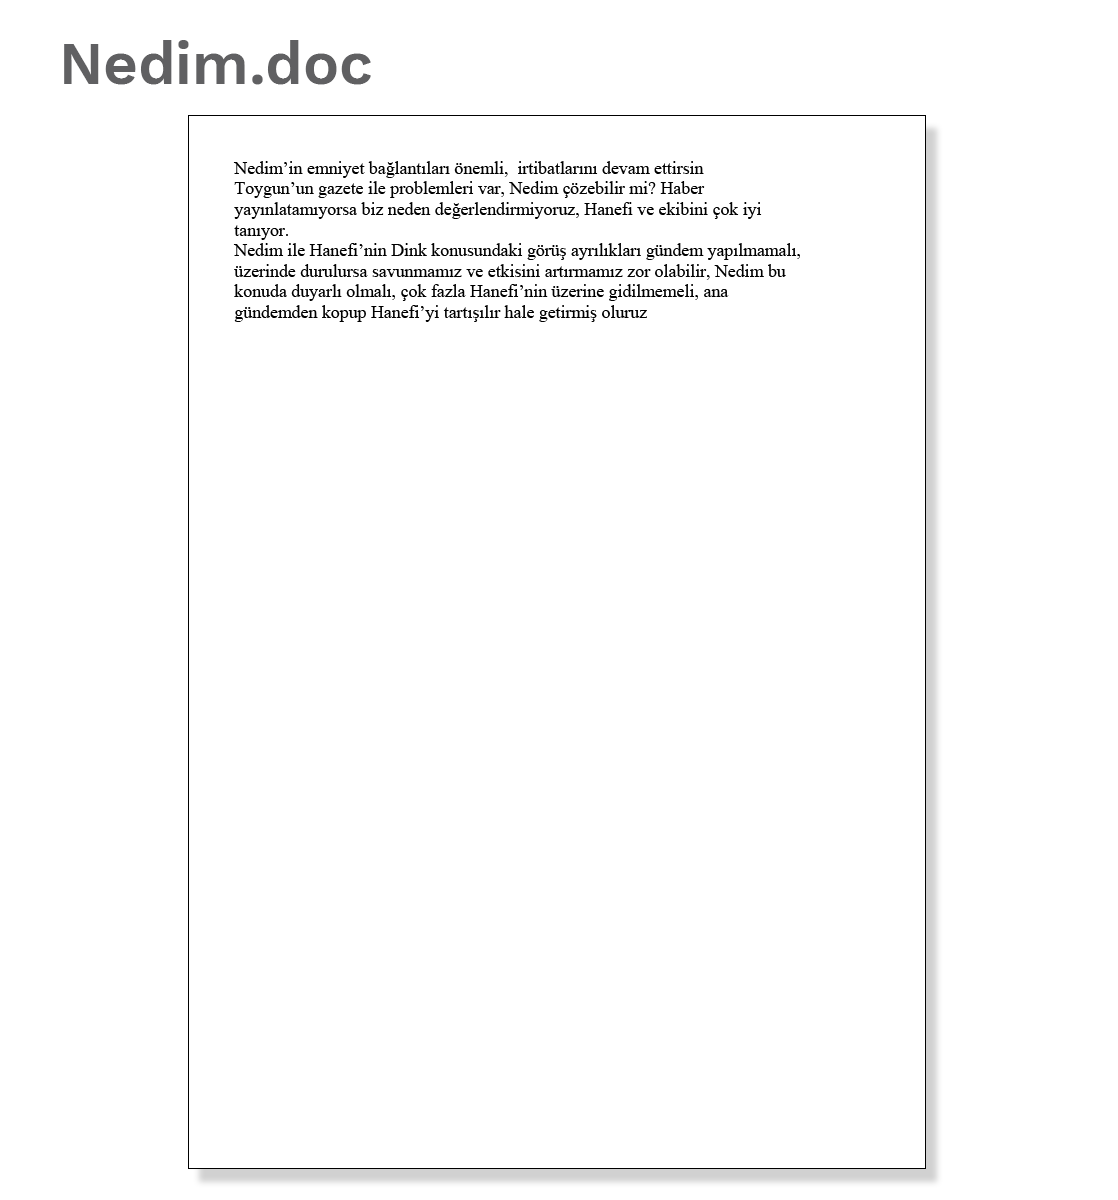 Document 4: Nedim.doc